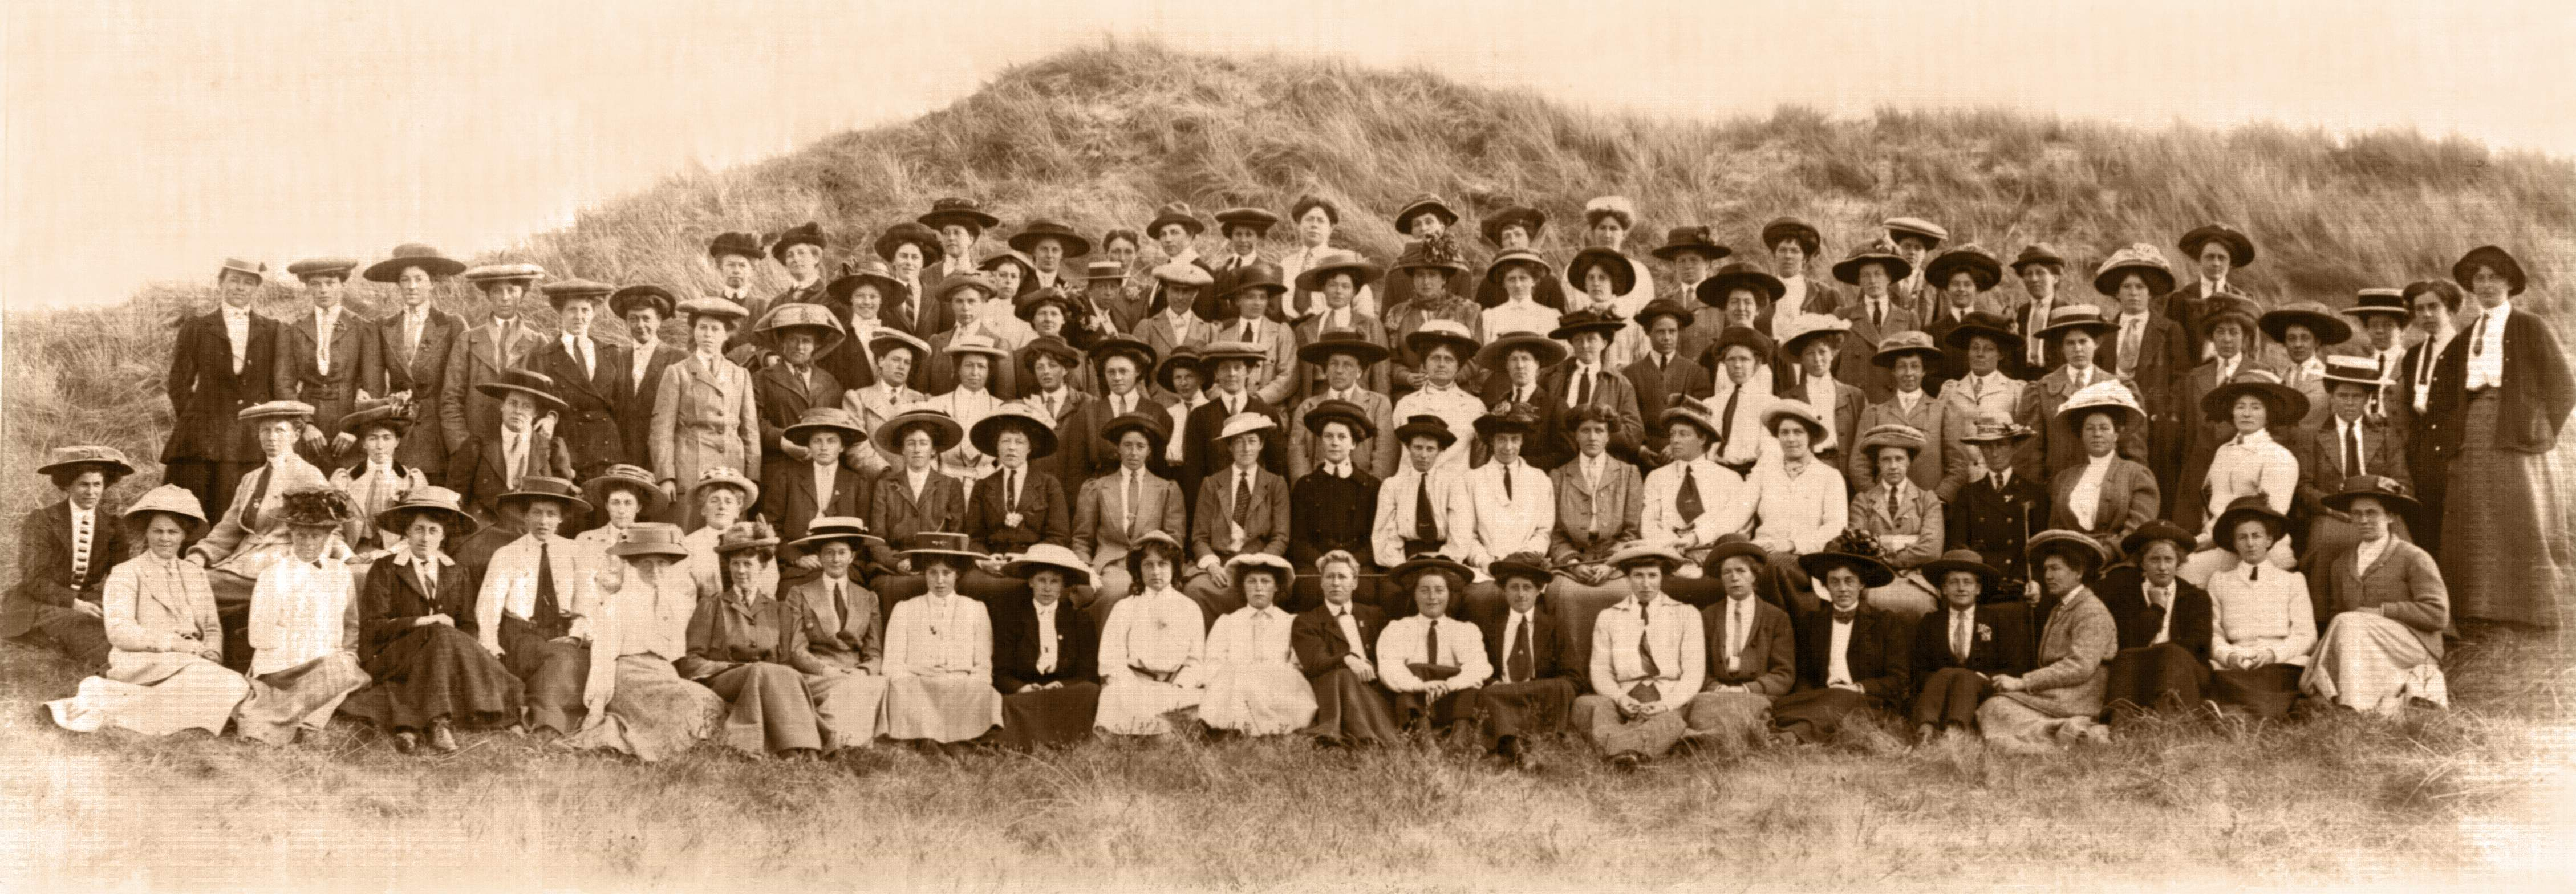 1909 Ladies' British Open Match Play Championship